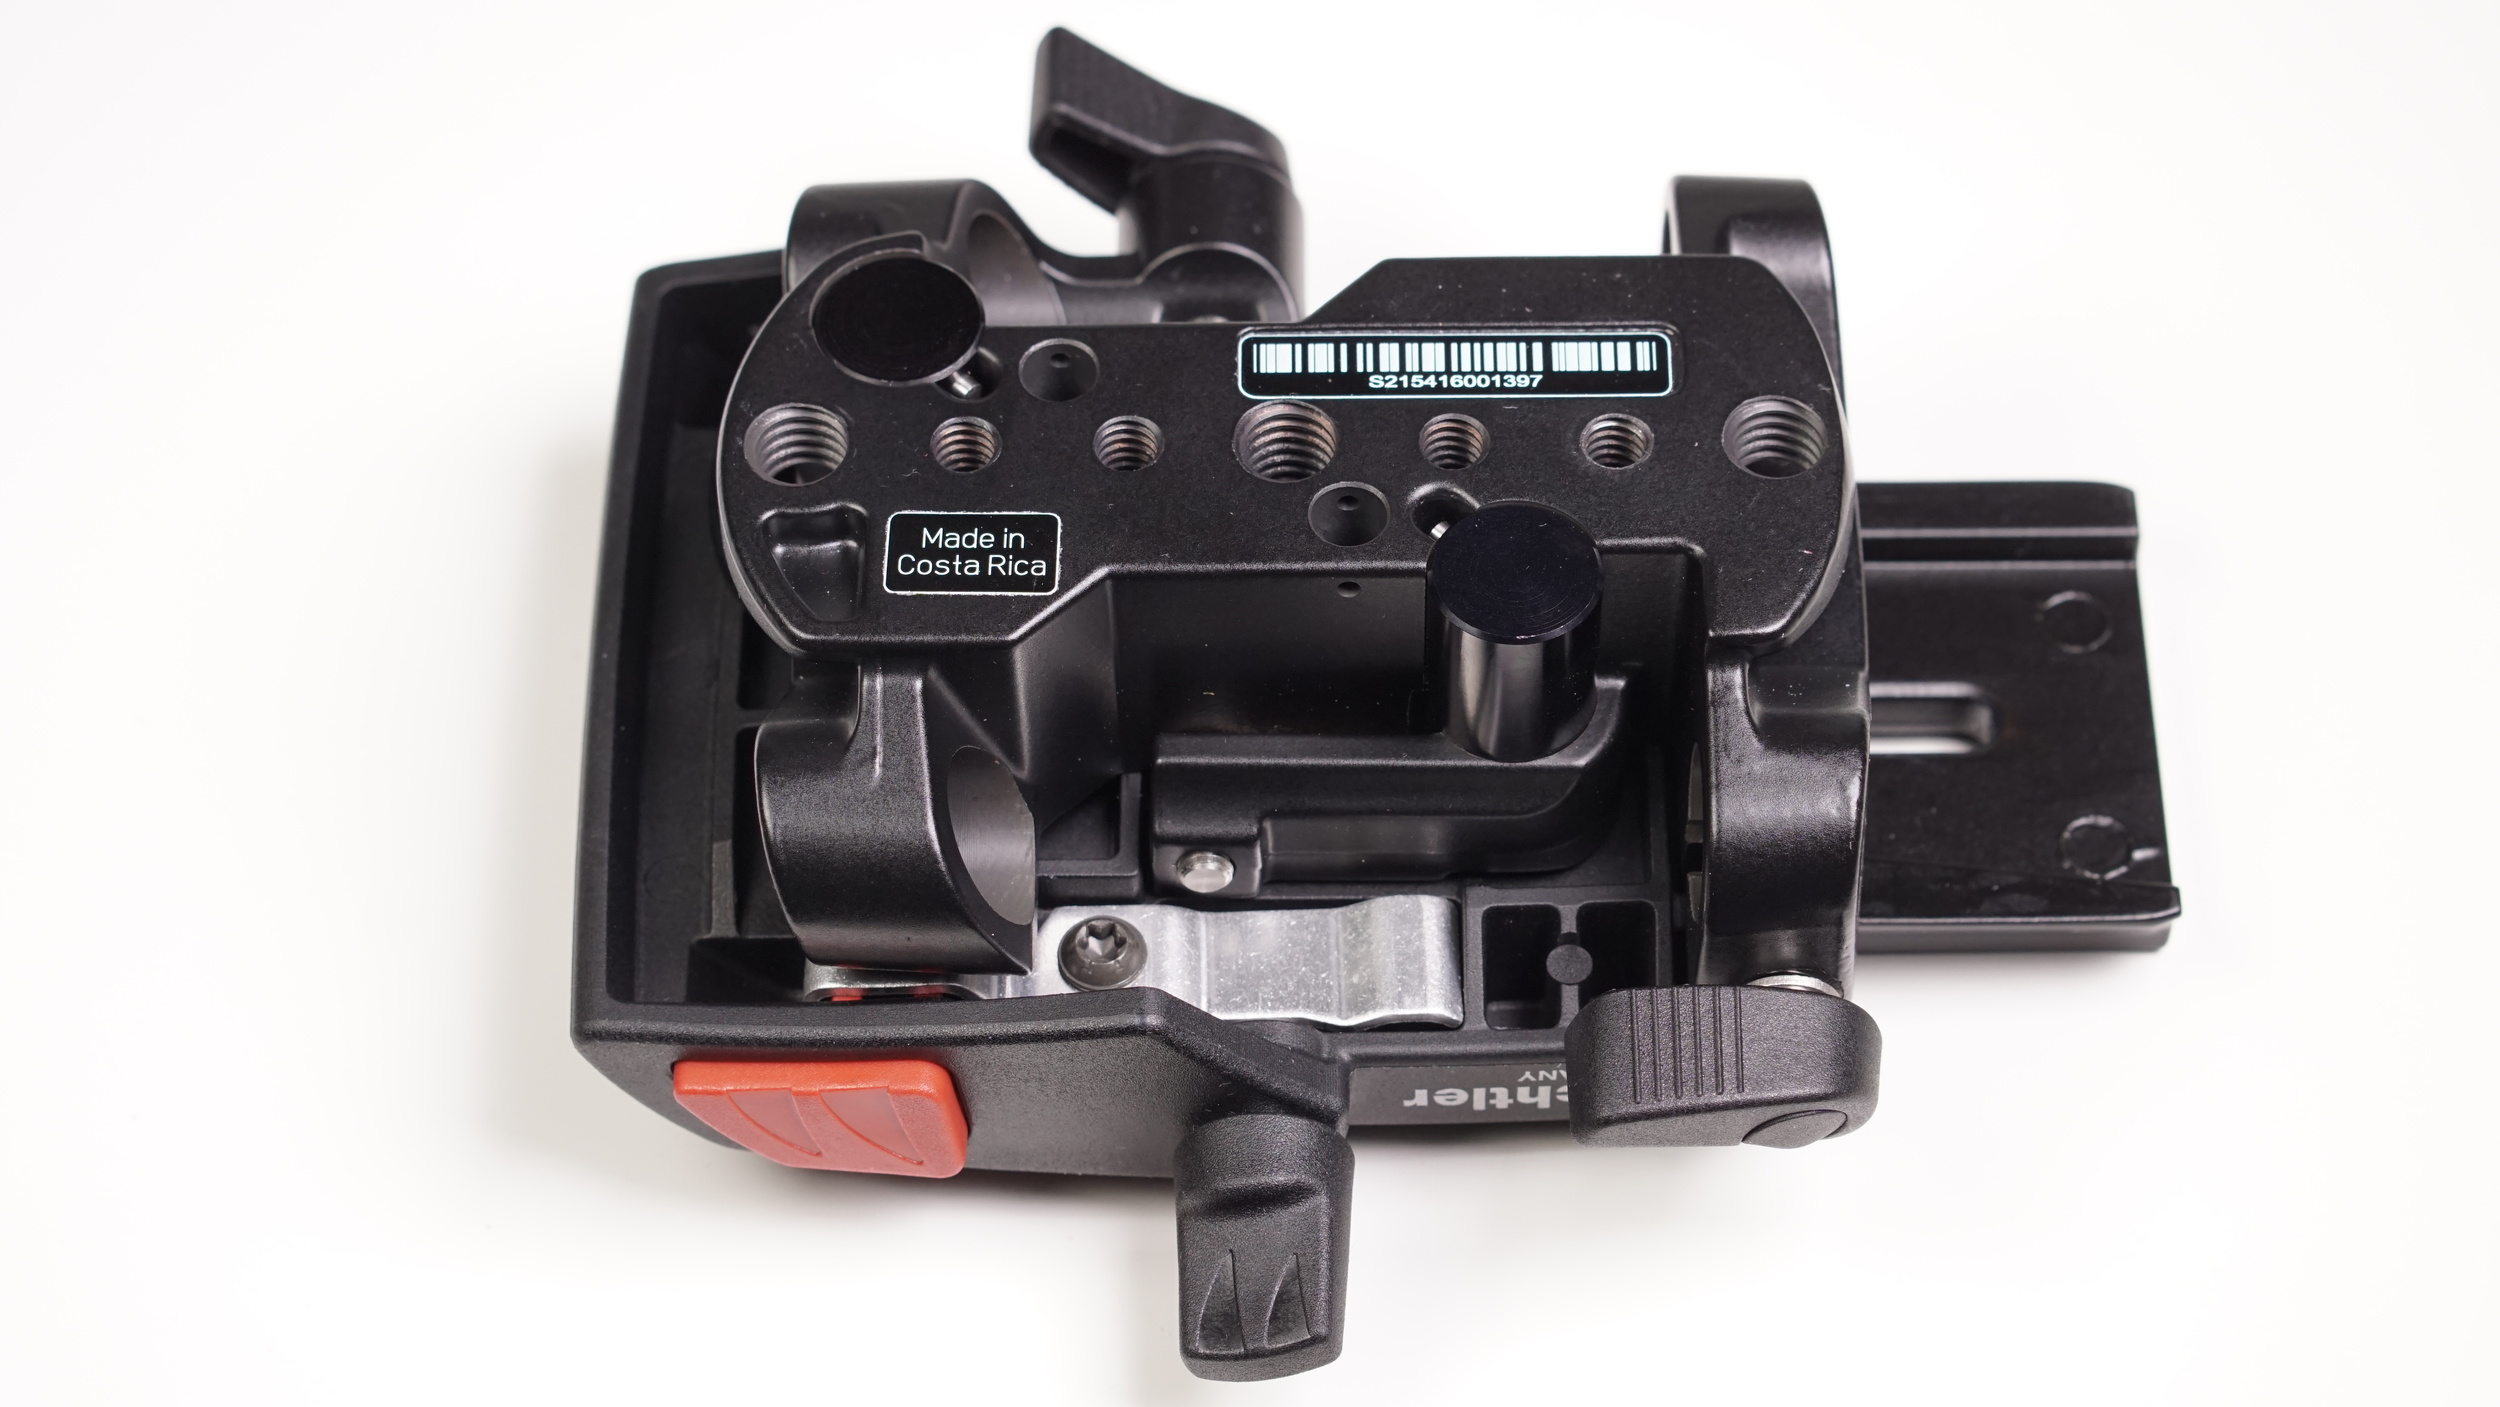 The underside of the Sachtler Ace base plate is the best angle to appreciate the forethought and complexity that goes into its design: many mounting points, robust, solid metal riser rods, differently sized and shaped levers fit to purpose, elegantly shaped core block - wow.